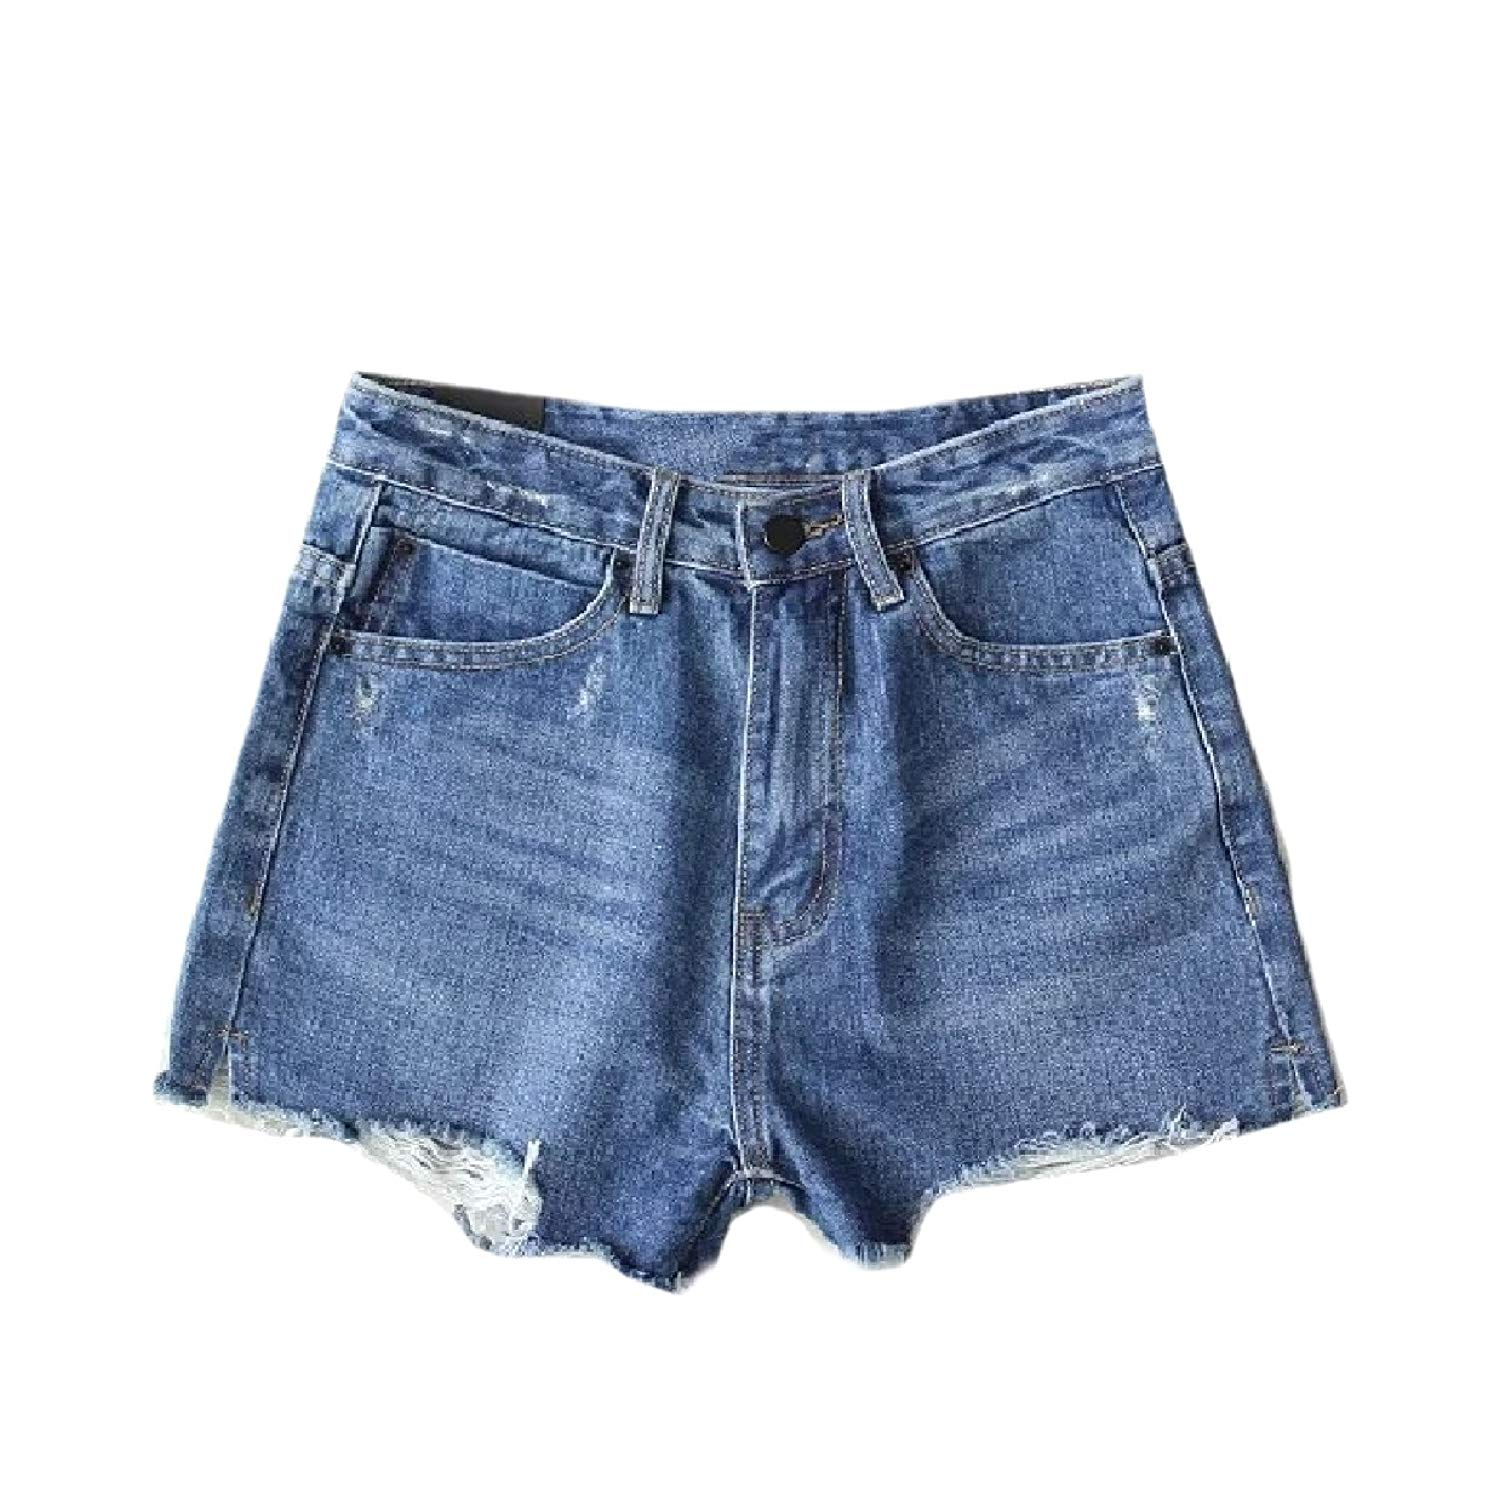 23c10cd65b Get Quotations · Howme Womens Summer Denim Washed Stretch Destroyed Jeans  Denim Shorts